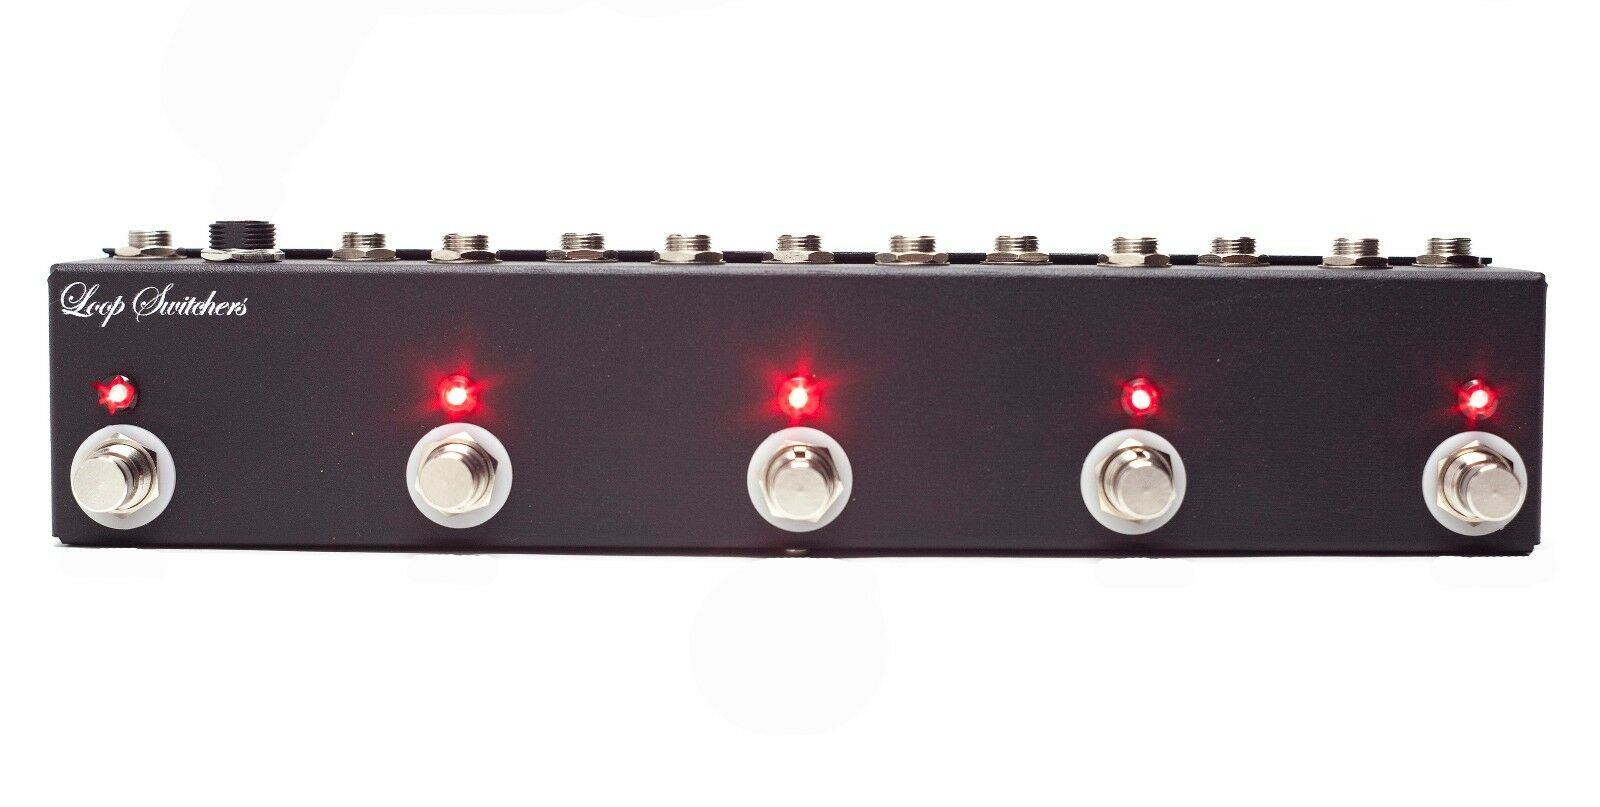 LOOP SWITCHERS 5 CHANNEL TRUE BYPASS SWITCH MASTER LOOPER